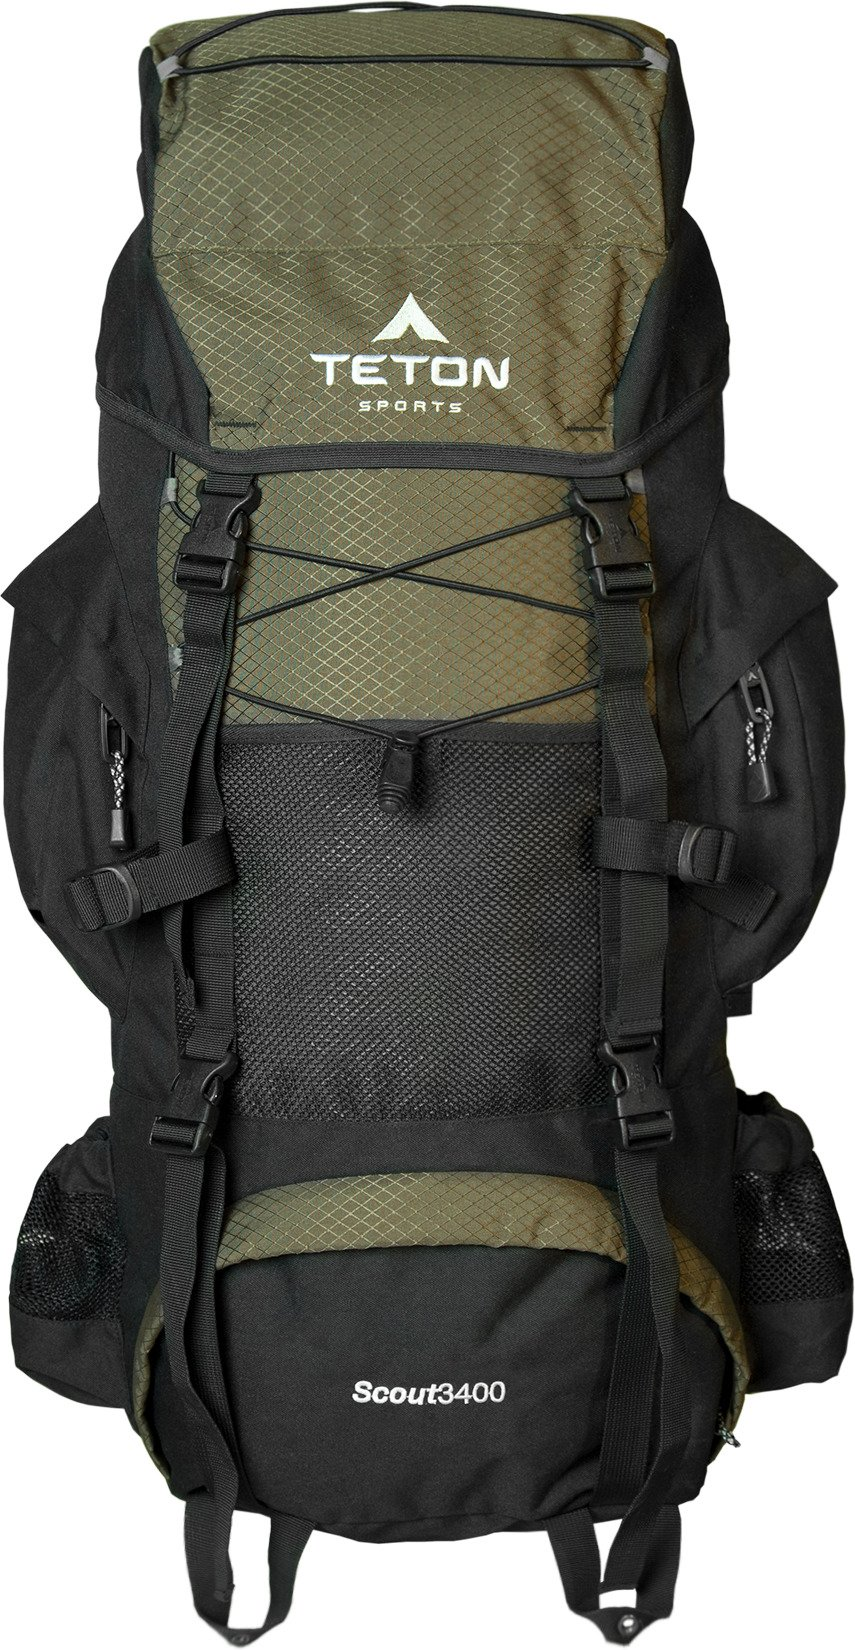 50f5f9c67d TETON Sports Scout 3400 Internal Frame Backpack  High-Performance Backpack  for Backpacking